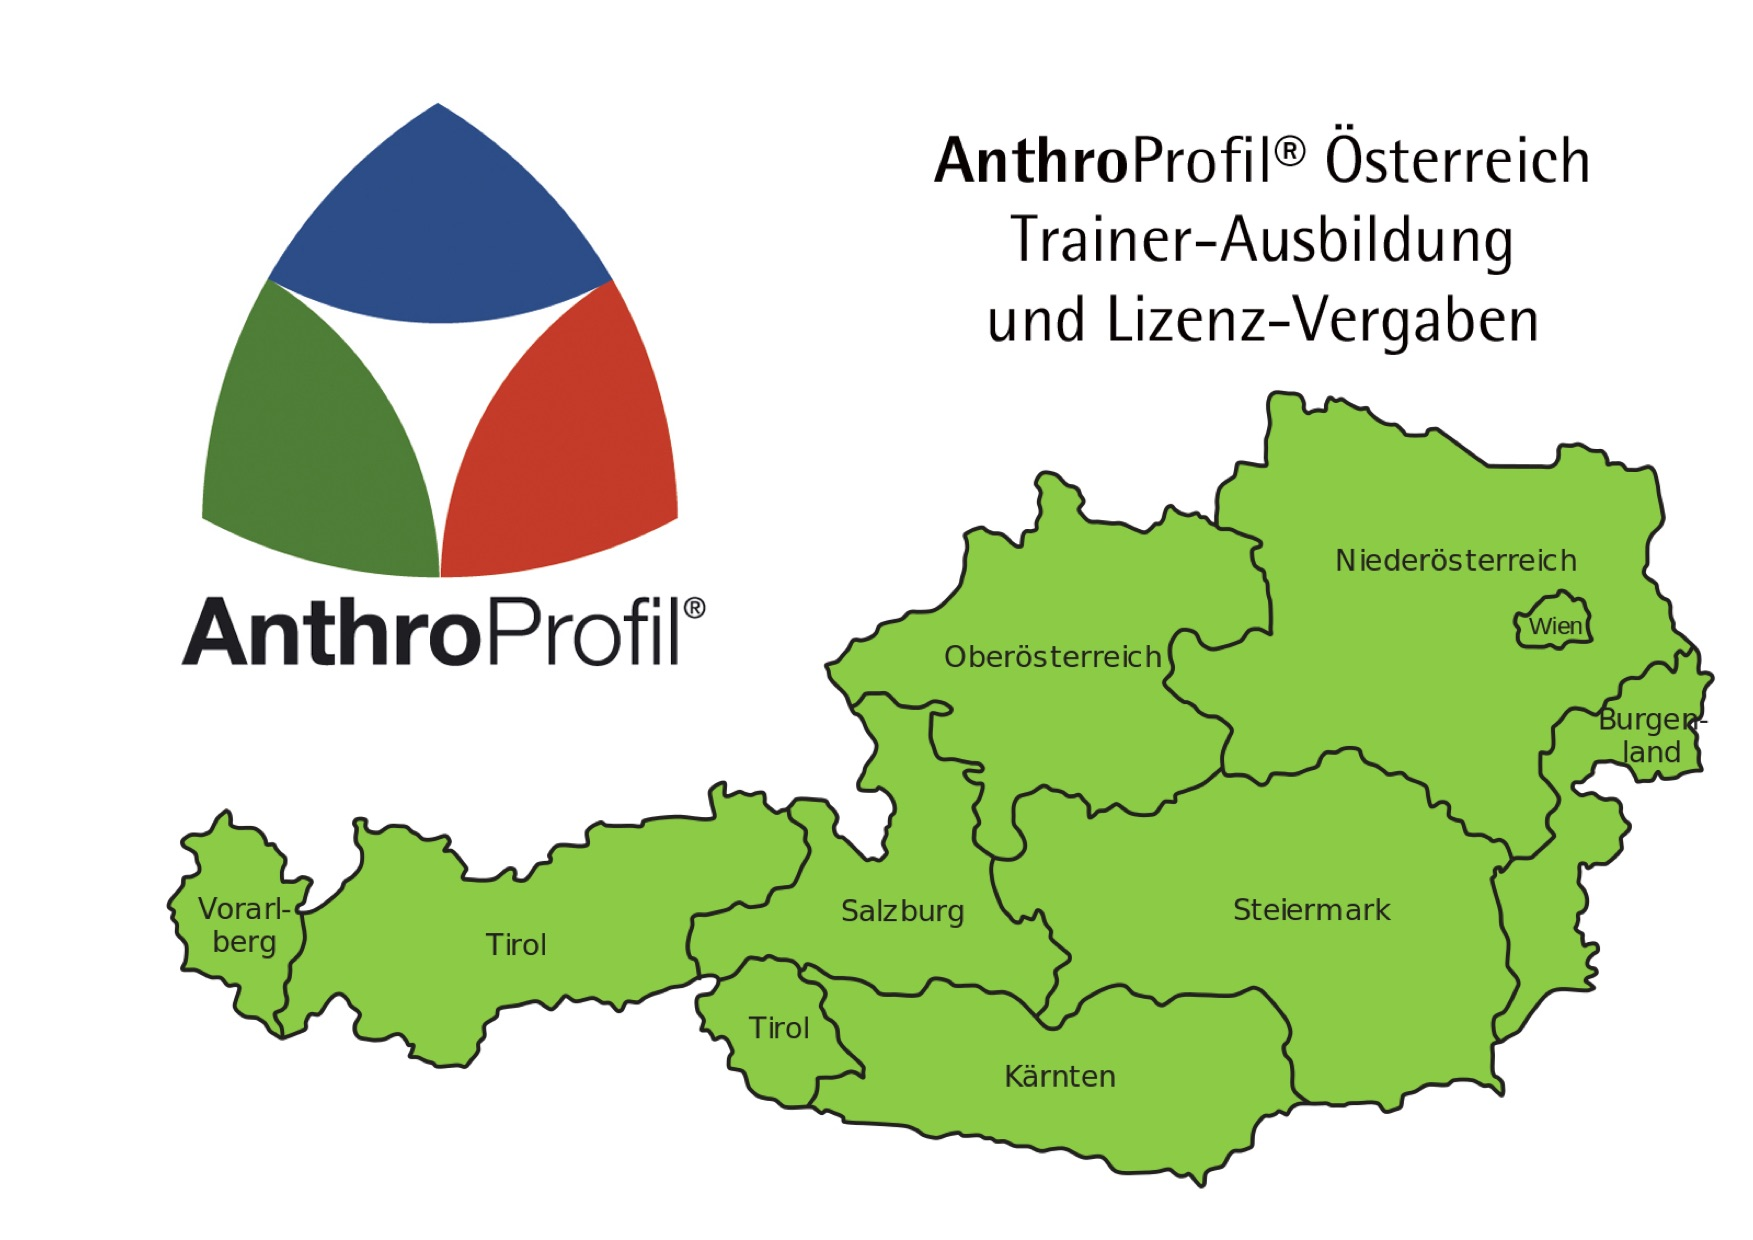 AnthroProfil®-Trainer-Ausbildung